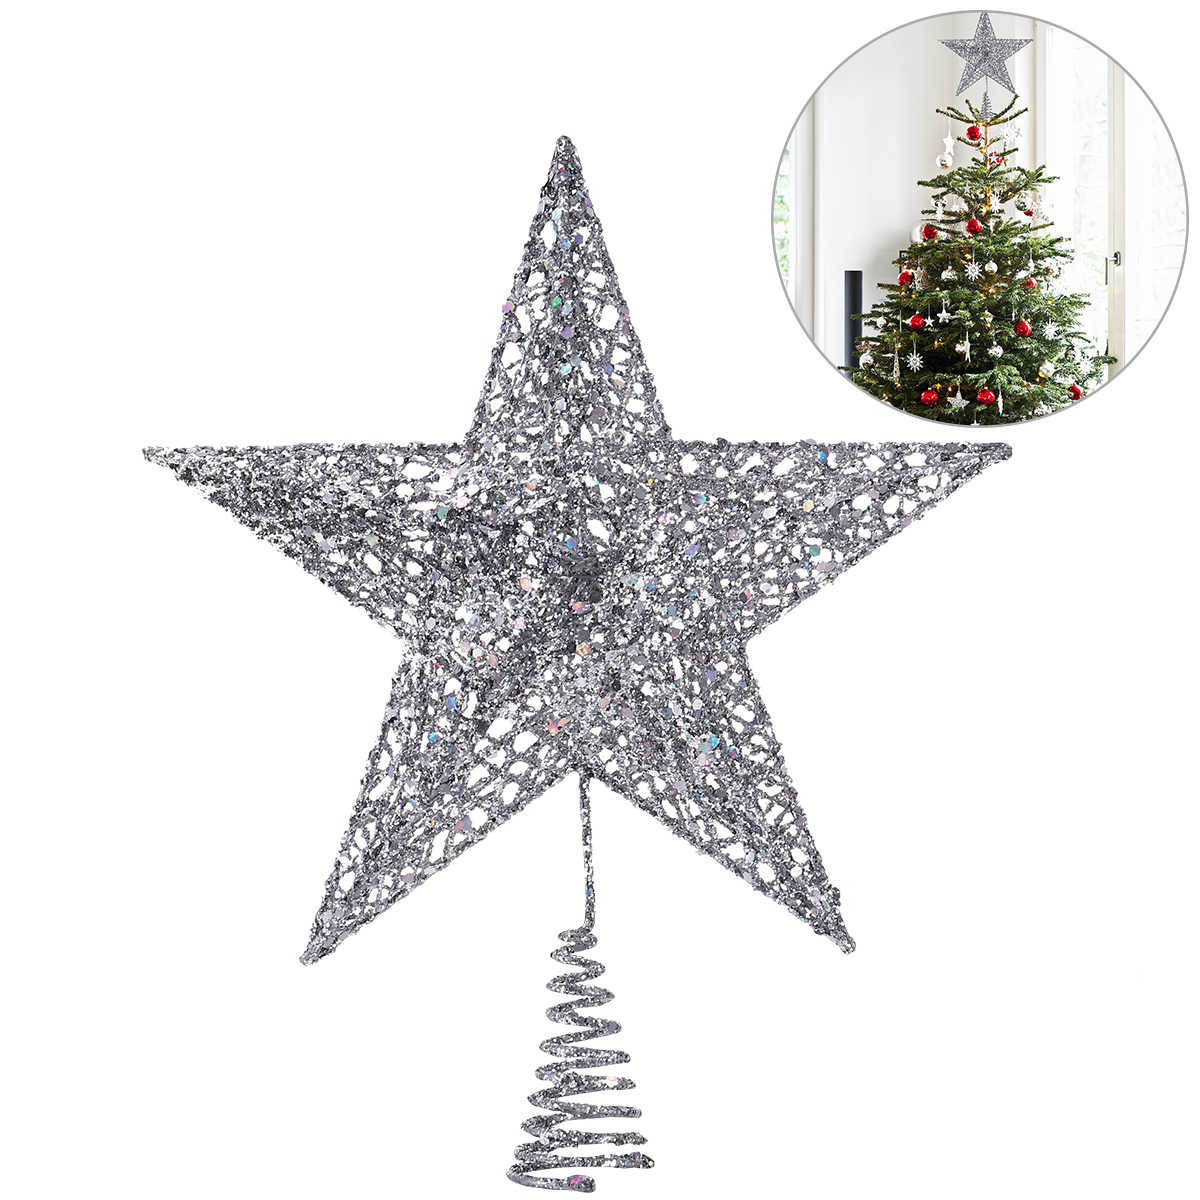 NICEXMAS Silver Star Tree Topper Cute Shimmery Star Christmas Tree Top Christmas Tree Decor 5 Point Star Treetop Decor 20cm A20